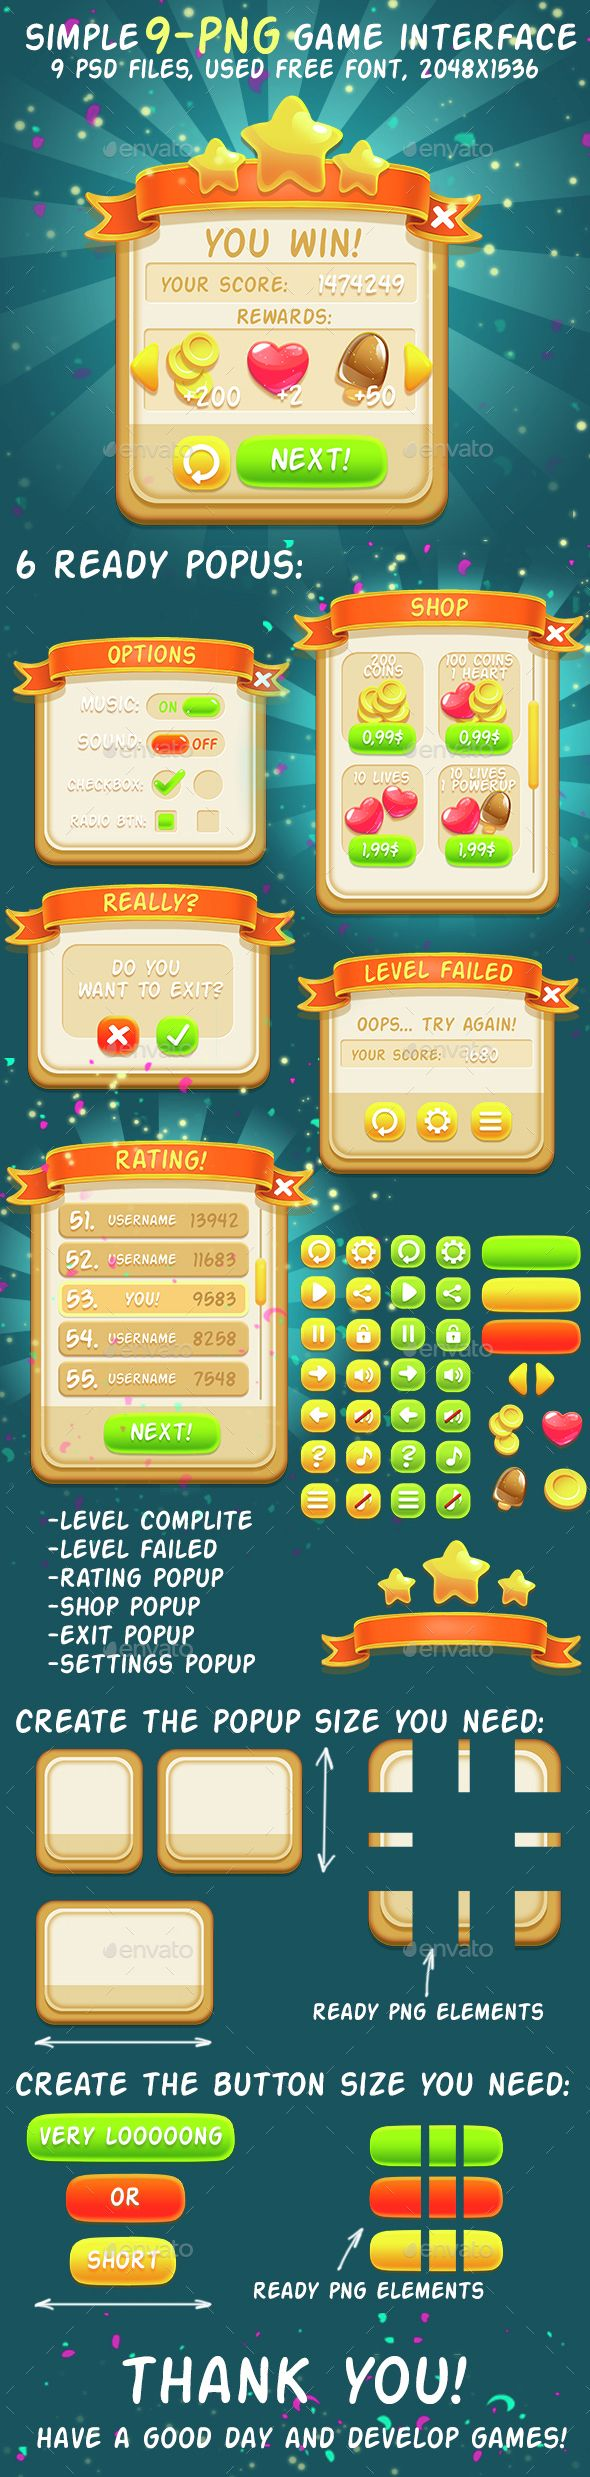 Simple 9-png Game Interface Asset | Download http://graphicriver.net/item/simple-9png-game-interface-asset/14920019?ref=sinzo